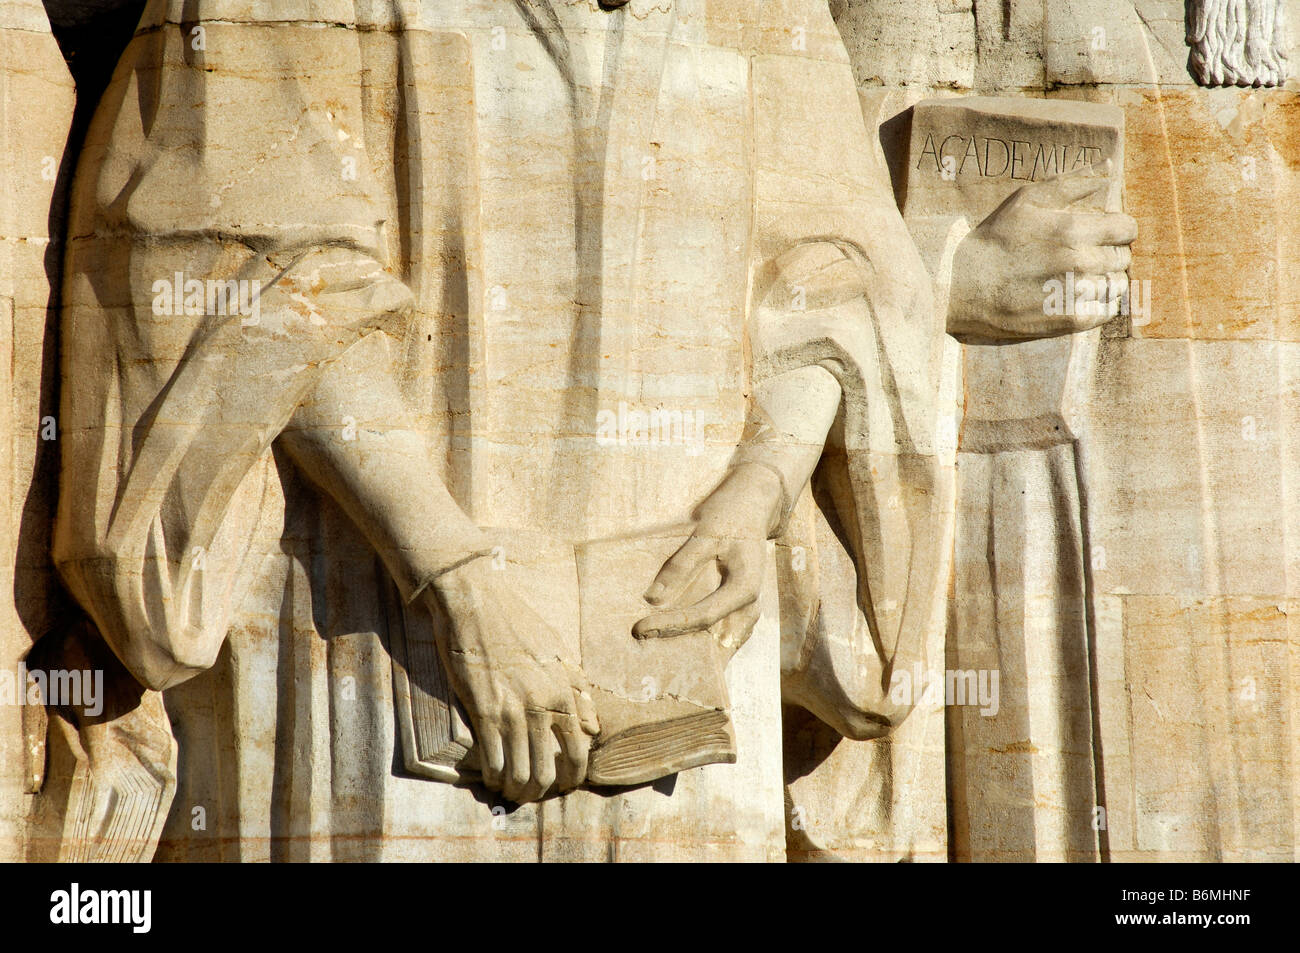 Dtail of the sculptures of John Calvin and Theodore Beza with a book in their hands, Wall of Reformers, Geneva Switzerland - Stock Image